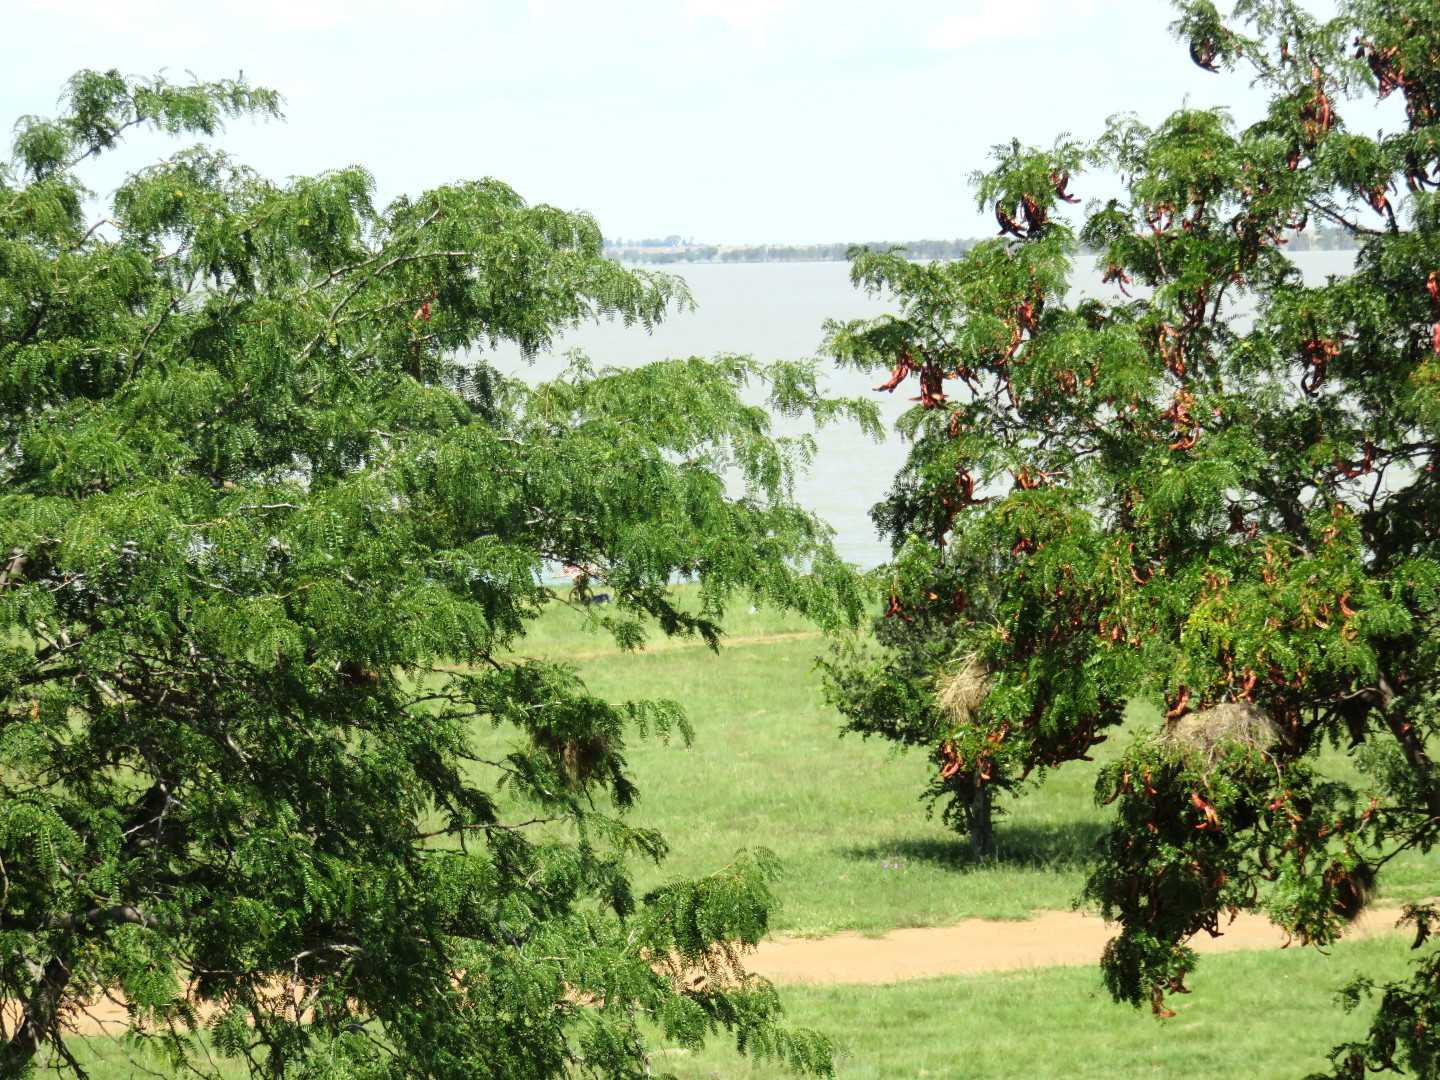 Views of the Vaal Dam from the windows of the apartment